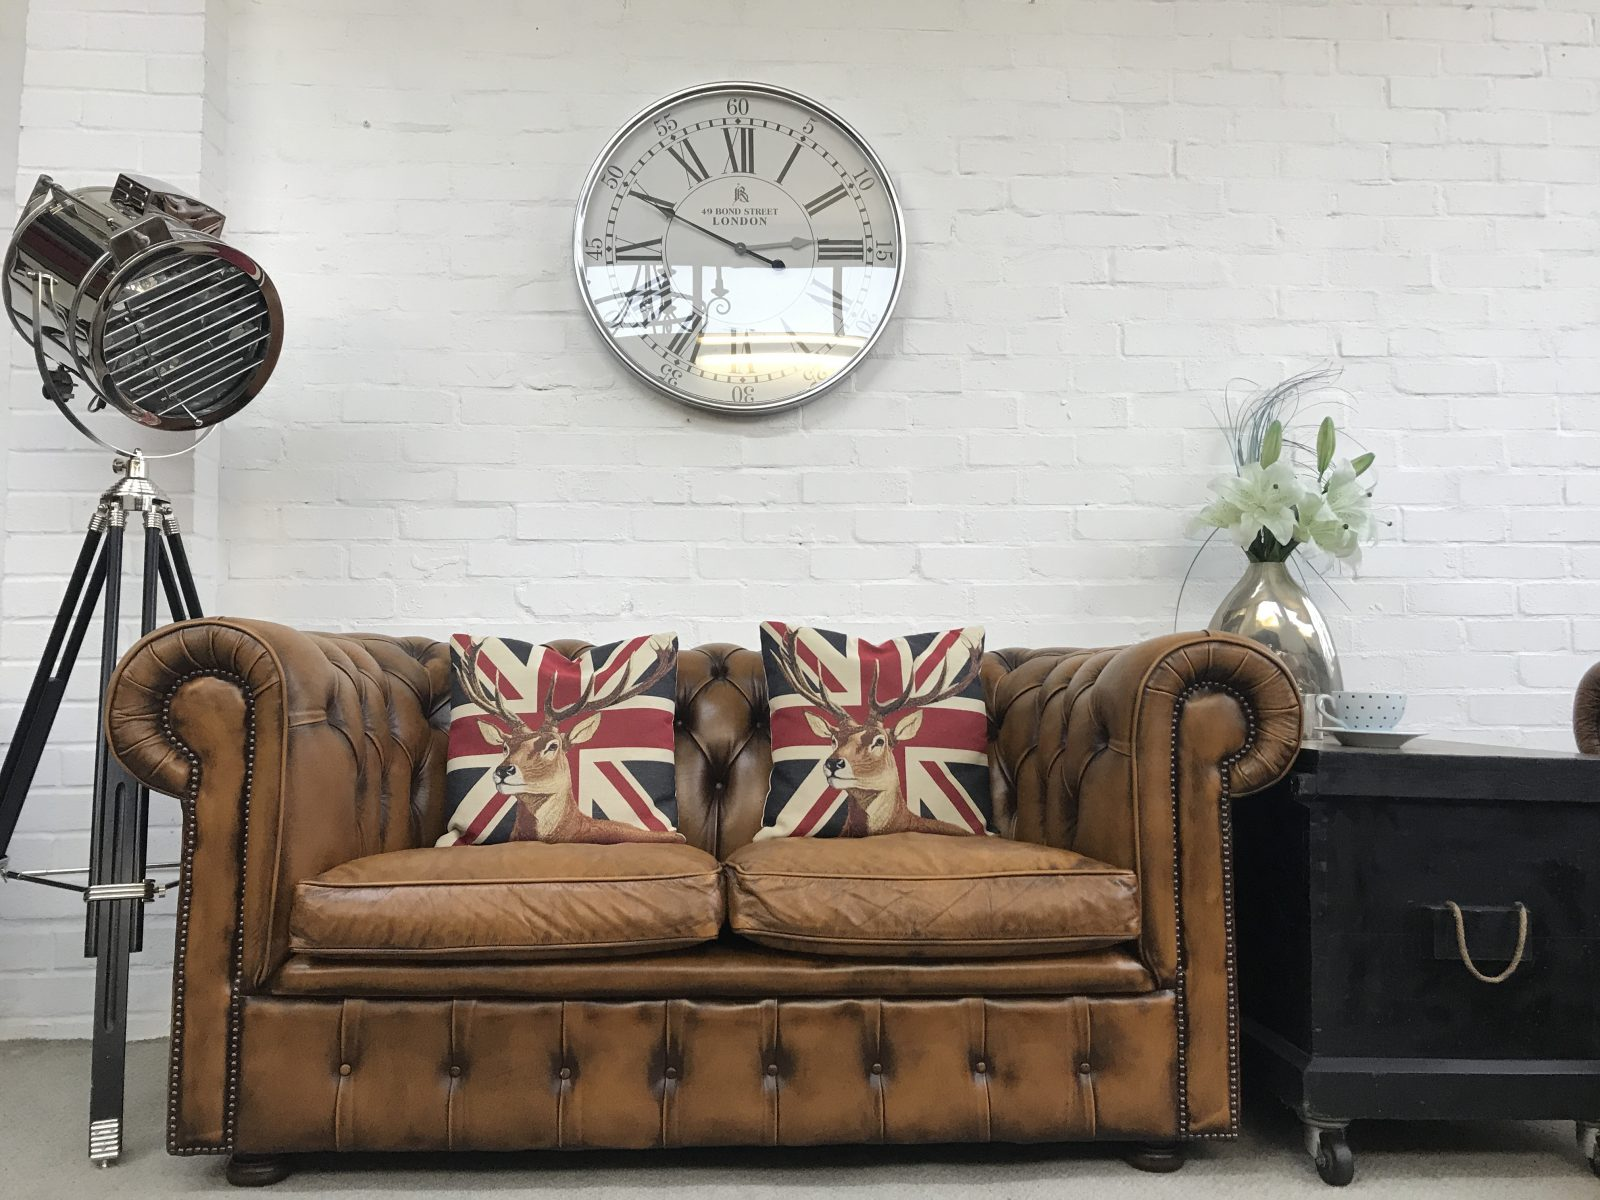 Vintage Golden Tan Chesterfield Sofa…..SOLD.